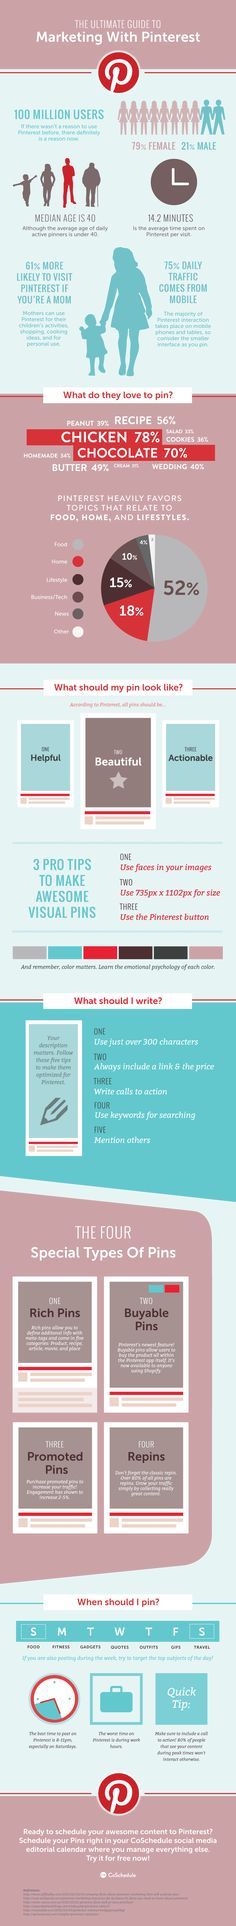 The Ultimate Guide On How To Use Pinterest For Marketing | Infographic